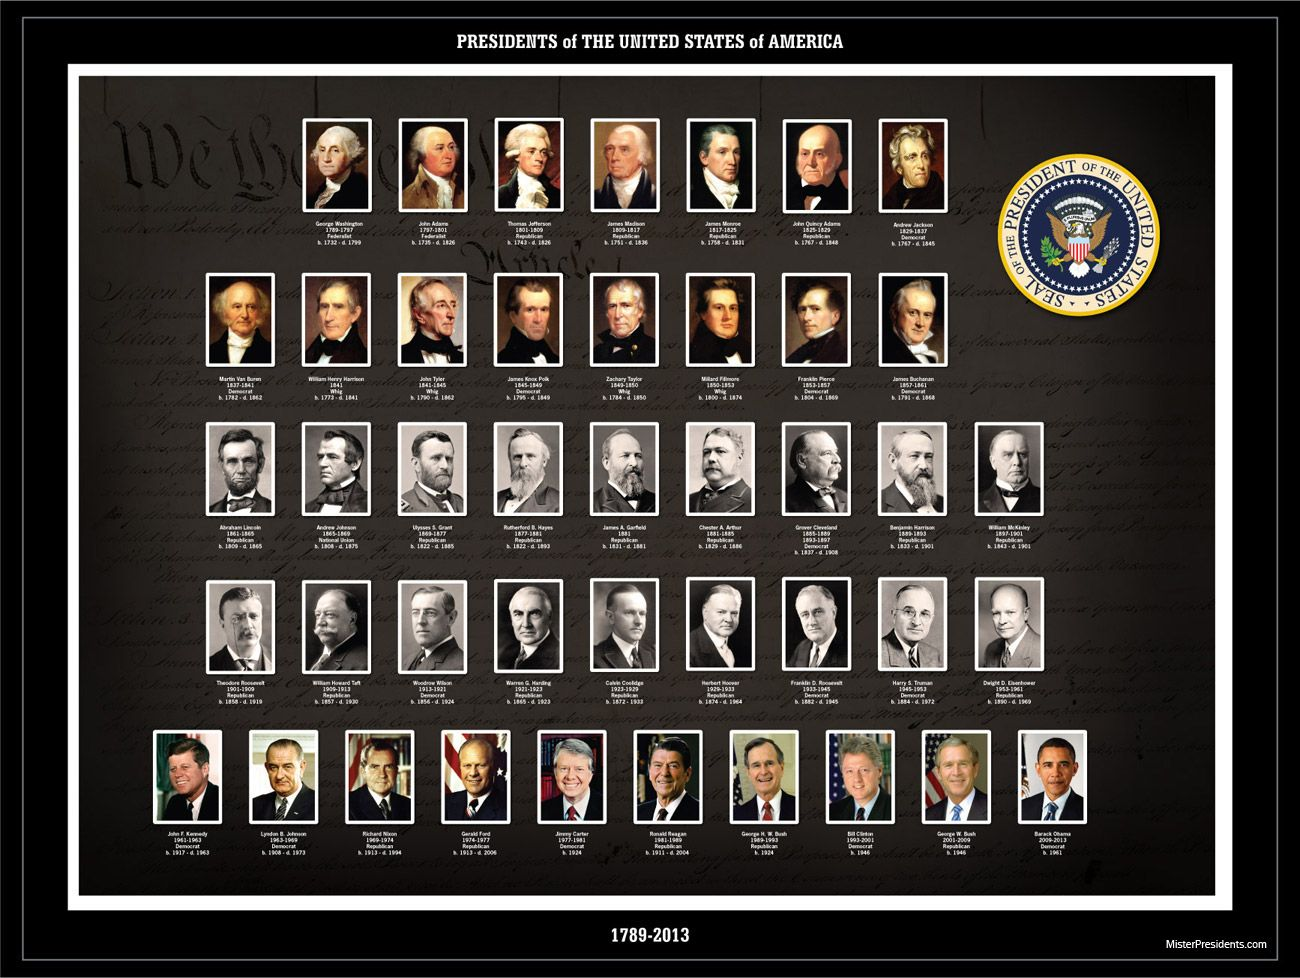 President S Of The United States Of America Poster President Quotes U S Presidents Presidents